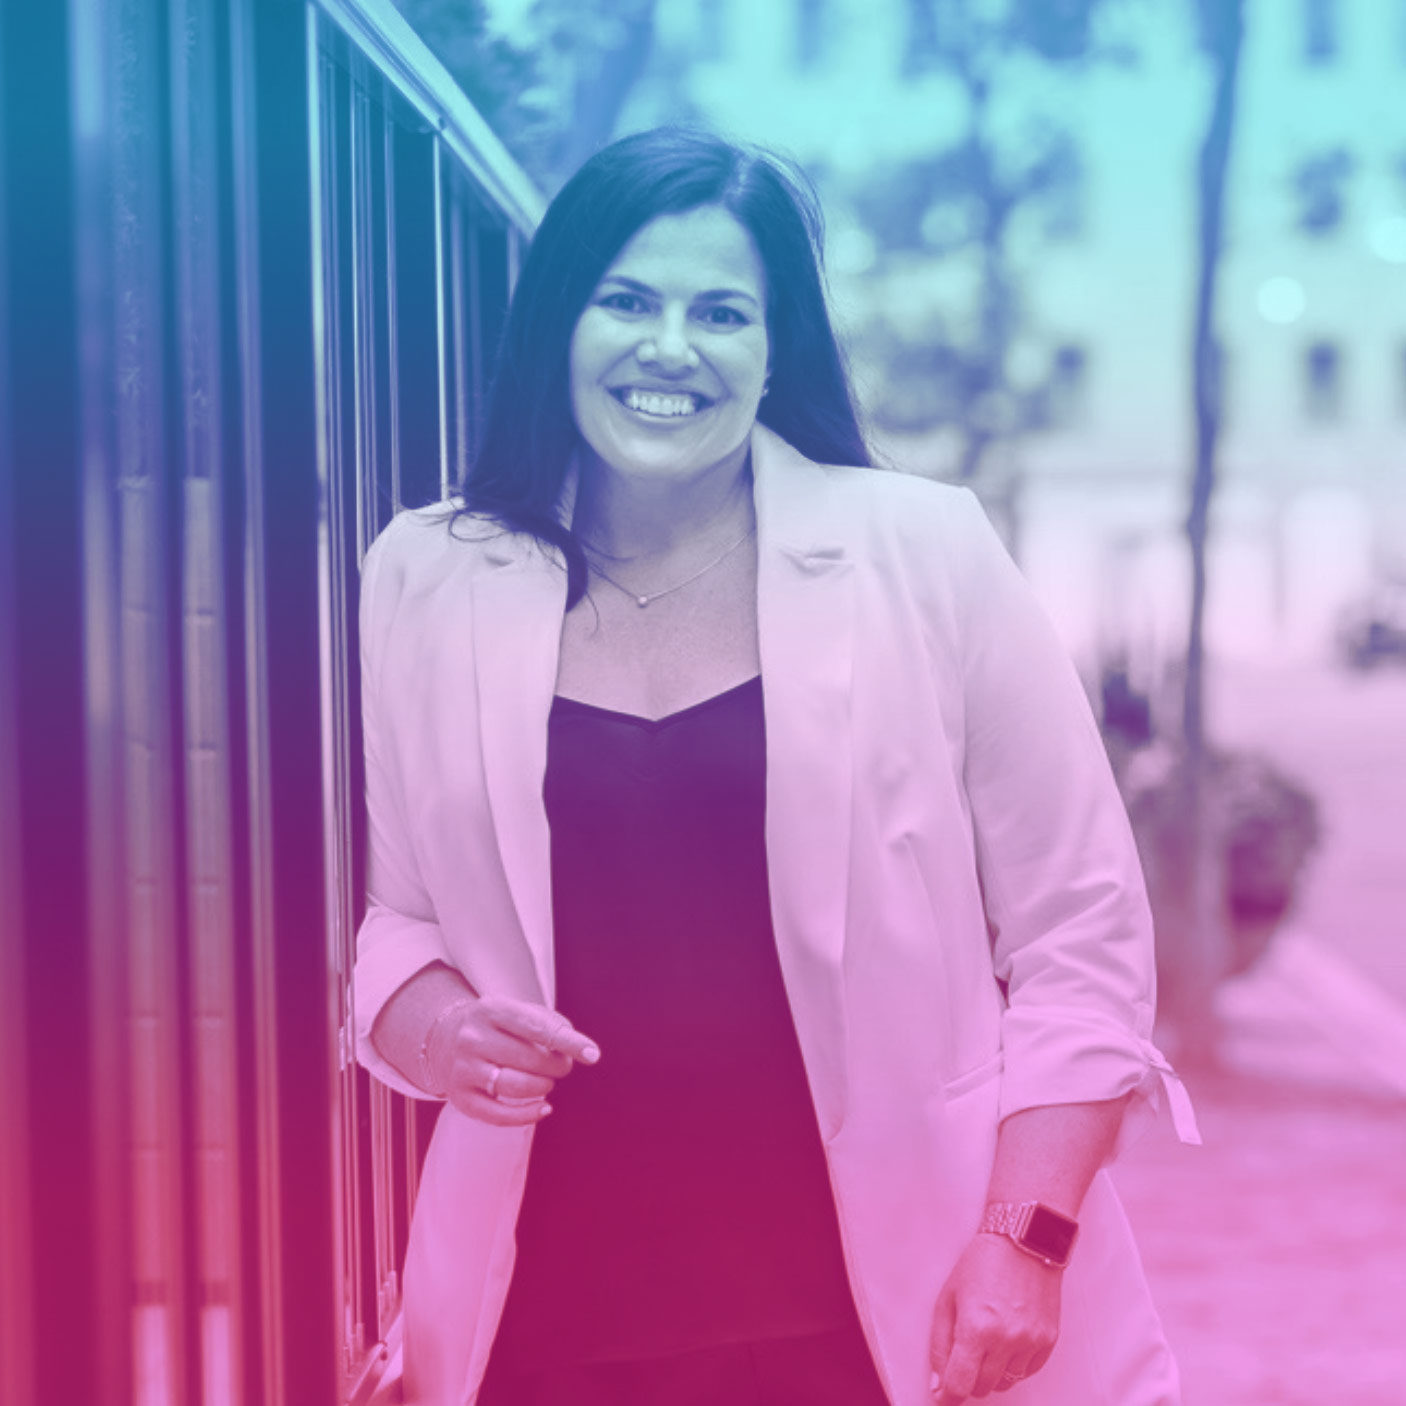 Electrify Expo Industry Day Speaker Meghan Braley